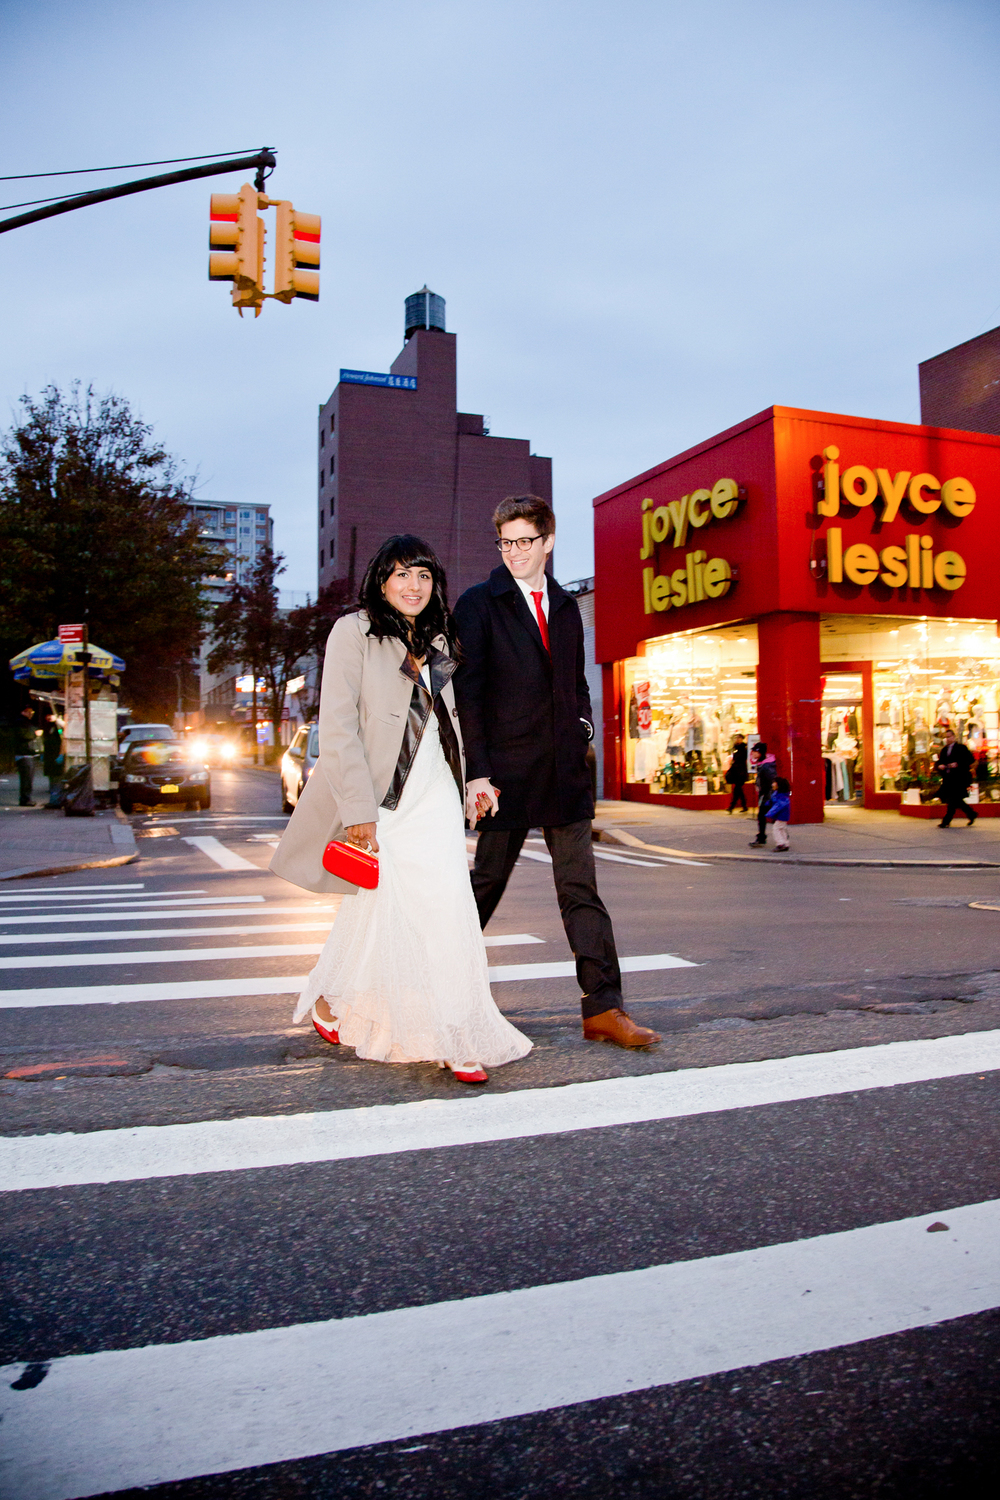 092_CarlyGaebe_SteadfastStudio_WeddingPhotography_NewYorkCity_Flushing_Queens_Indian_Bride_Groom.jpg